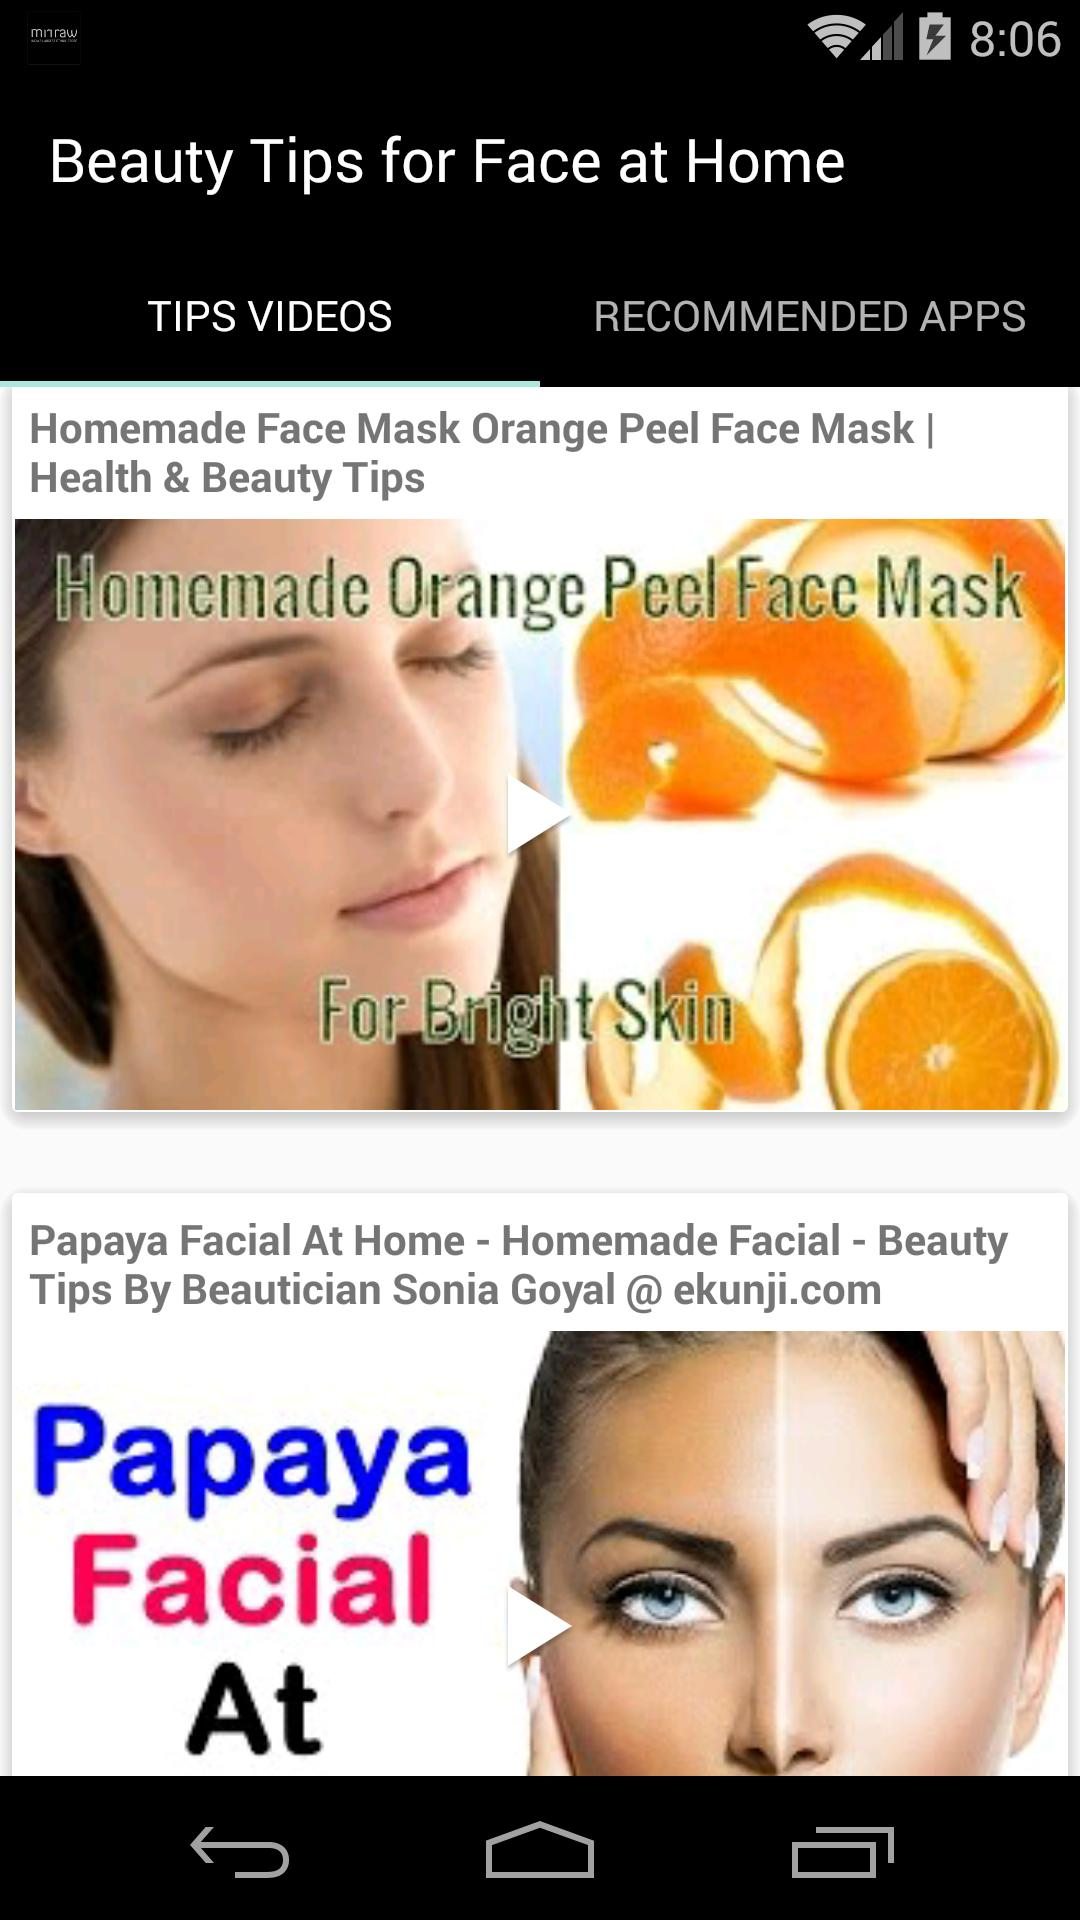 Beauty Tips for Face at Home for Android - APK Download